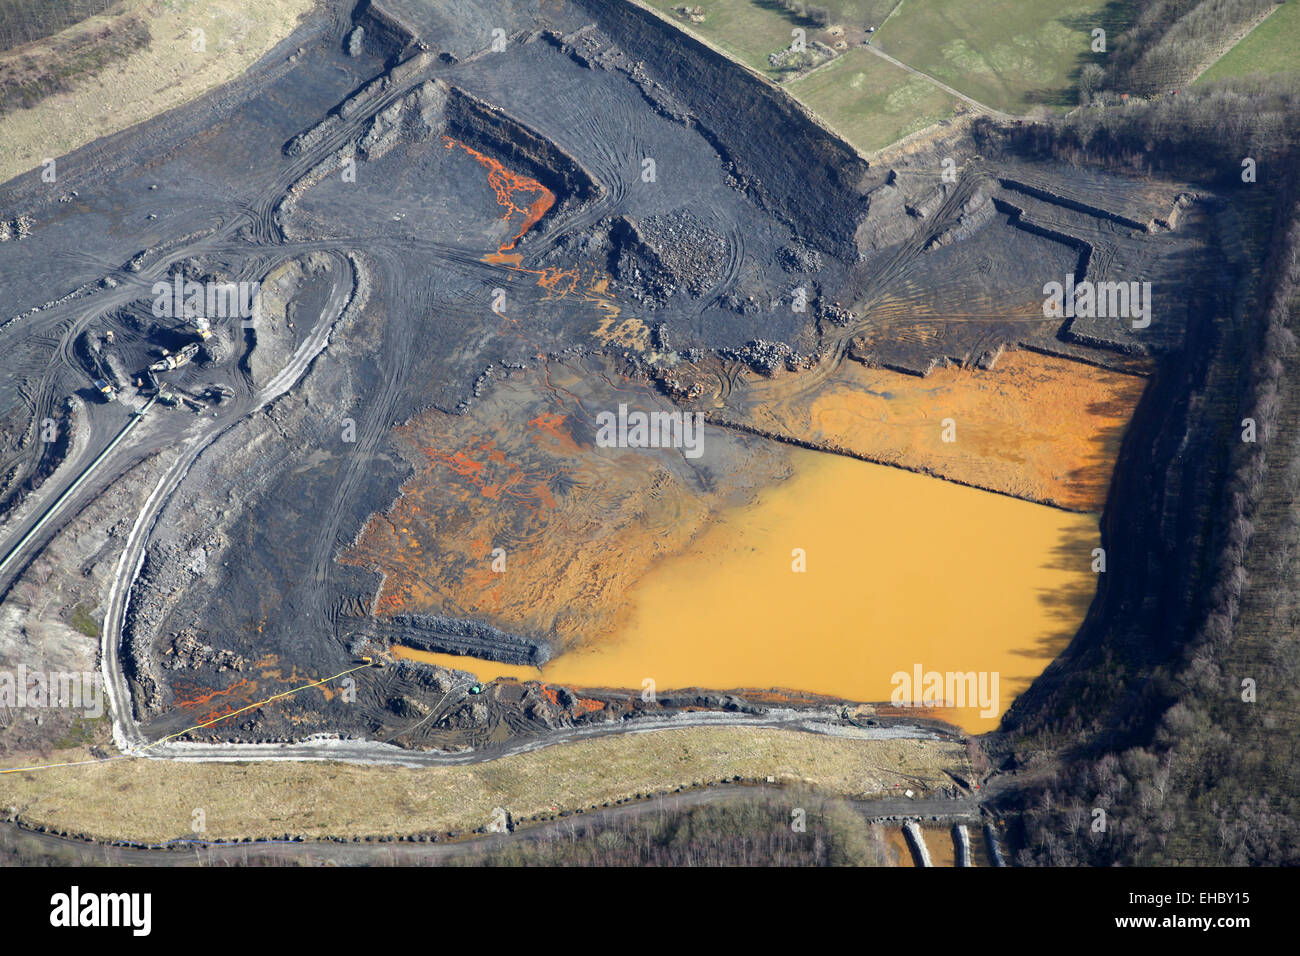 aerial view of a shale quarry in England, UK - Stock Image